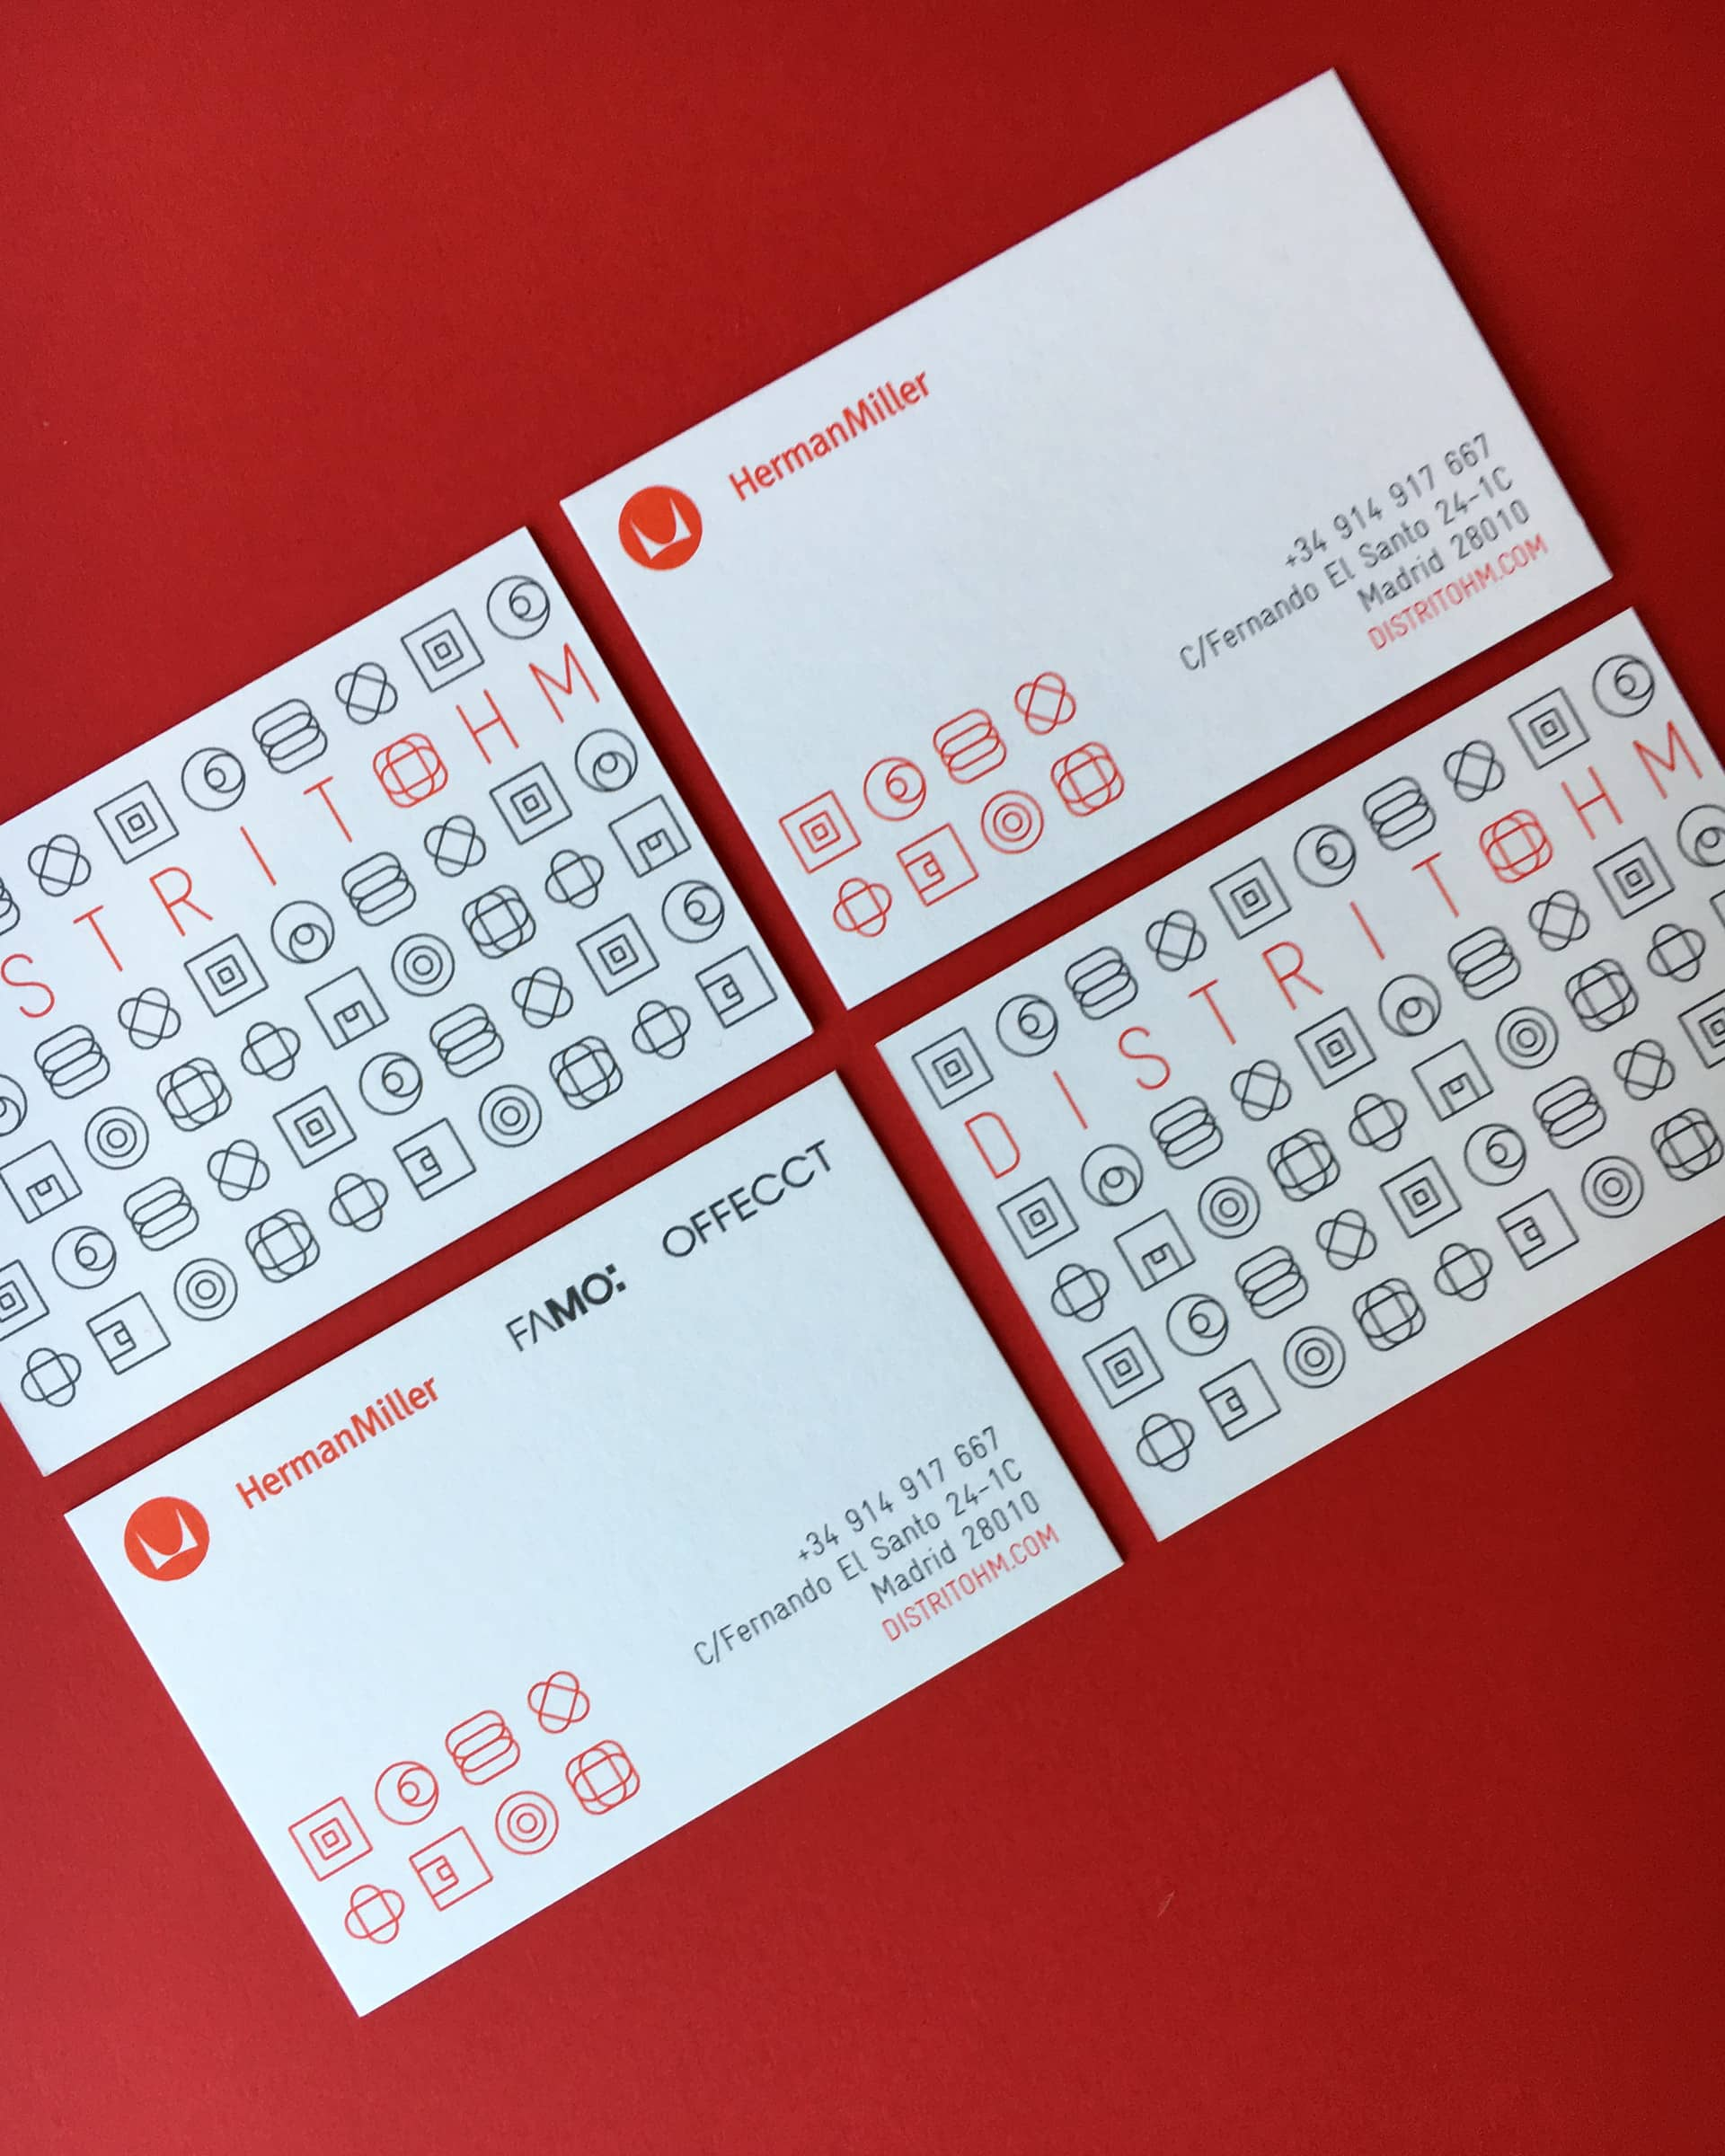 Distrito HM business cards design with Herman Miller, Offecct and Famo logos